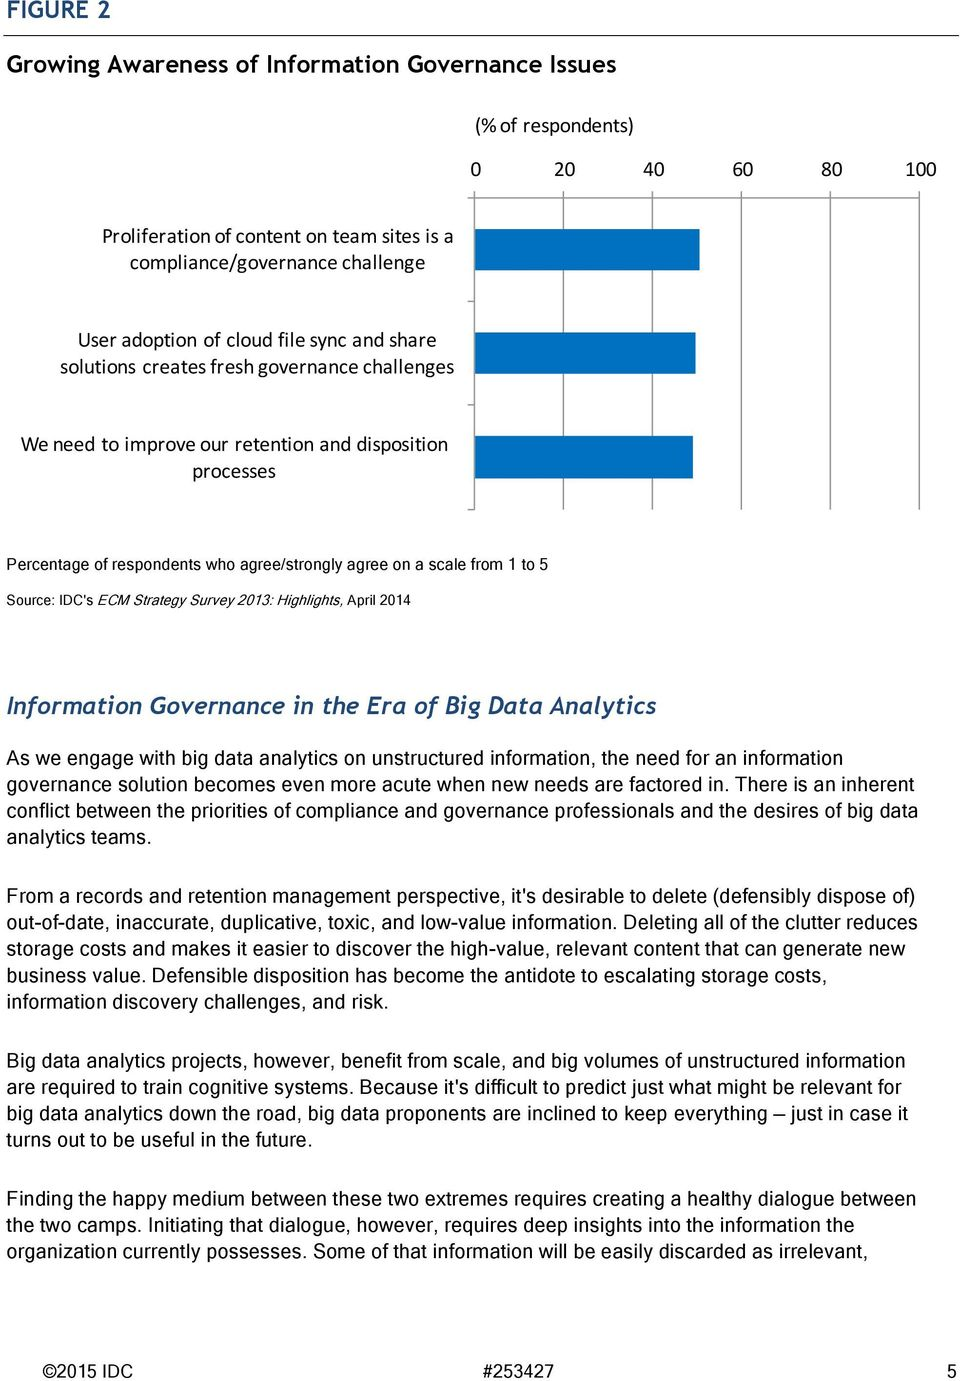 Source: IDC's ECM Strategy Survey 2013: Highlights, April 2014 Information Governance in the Era of Big Data Analytics As we engage with big data analytics on unstructured information, the need for